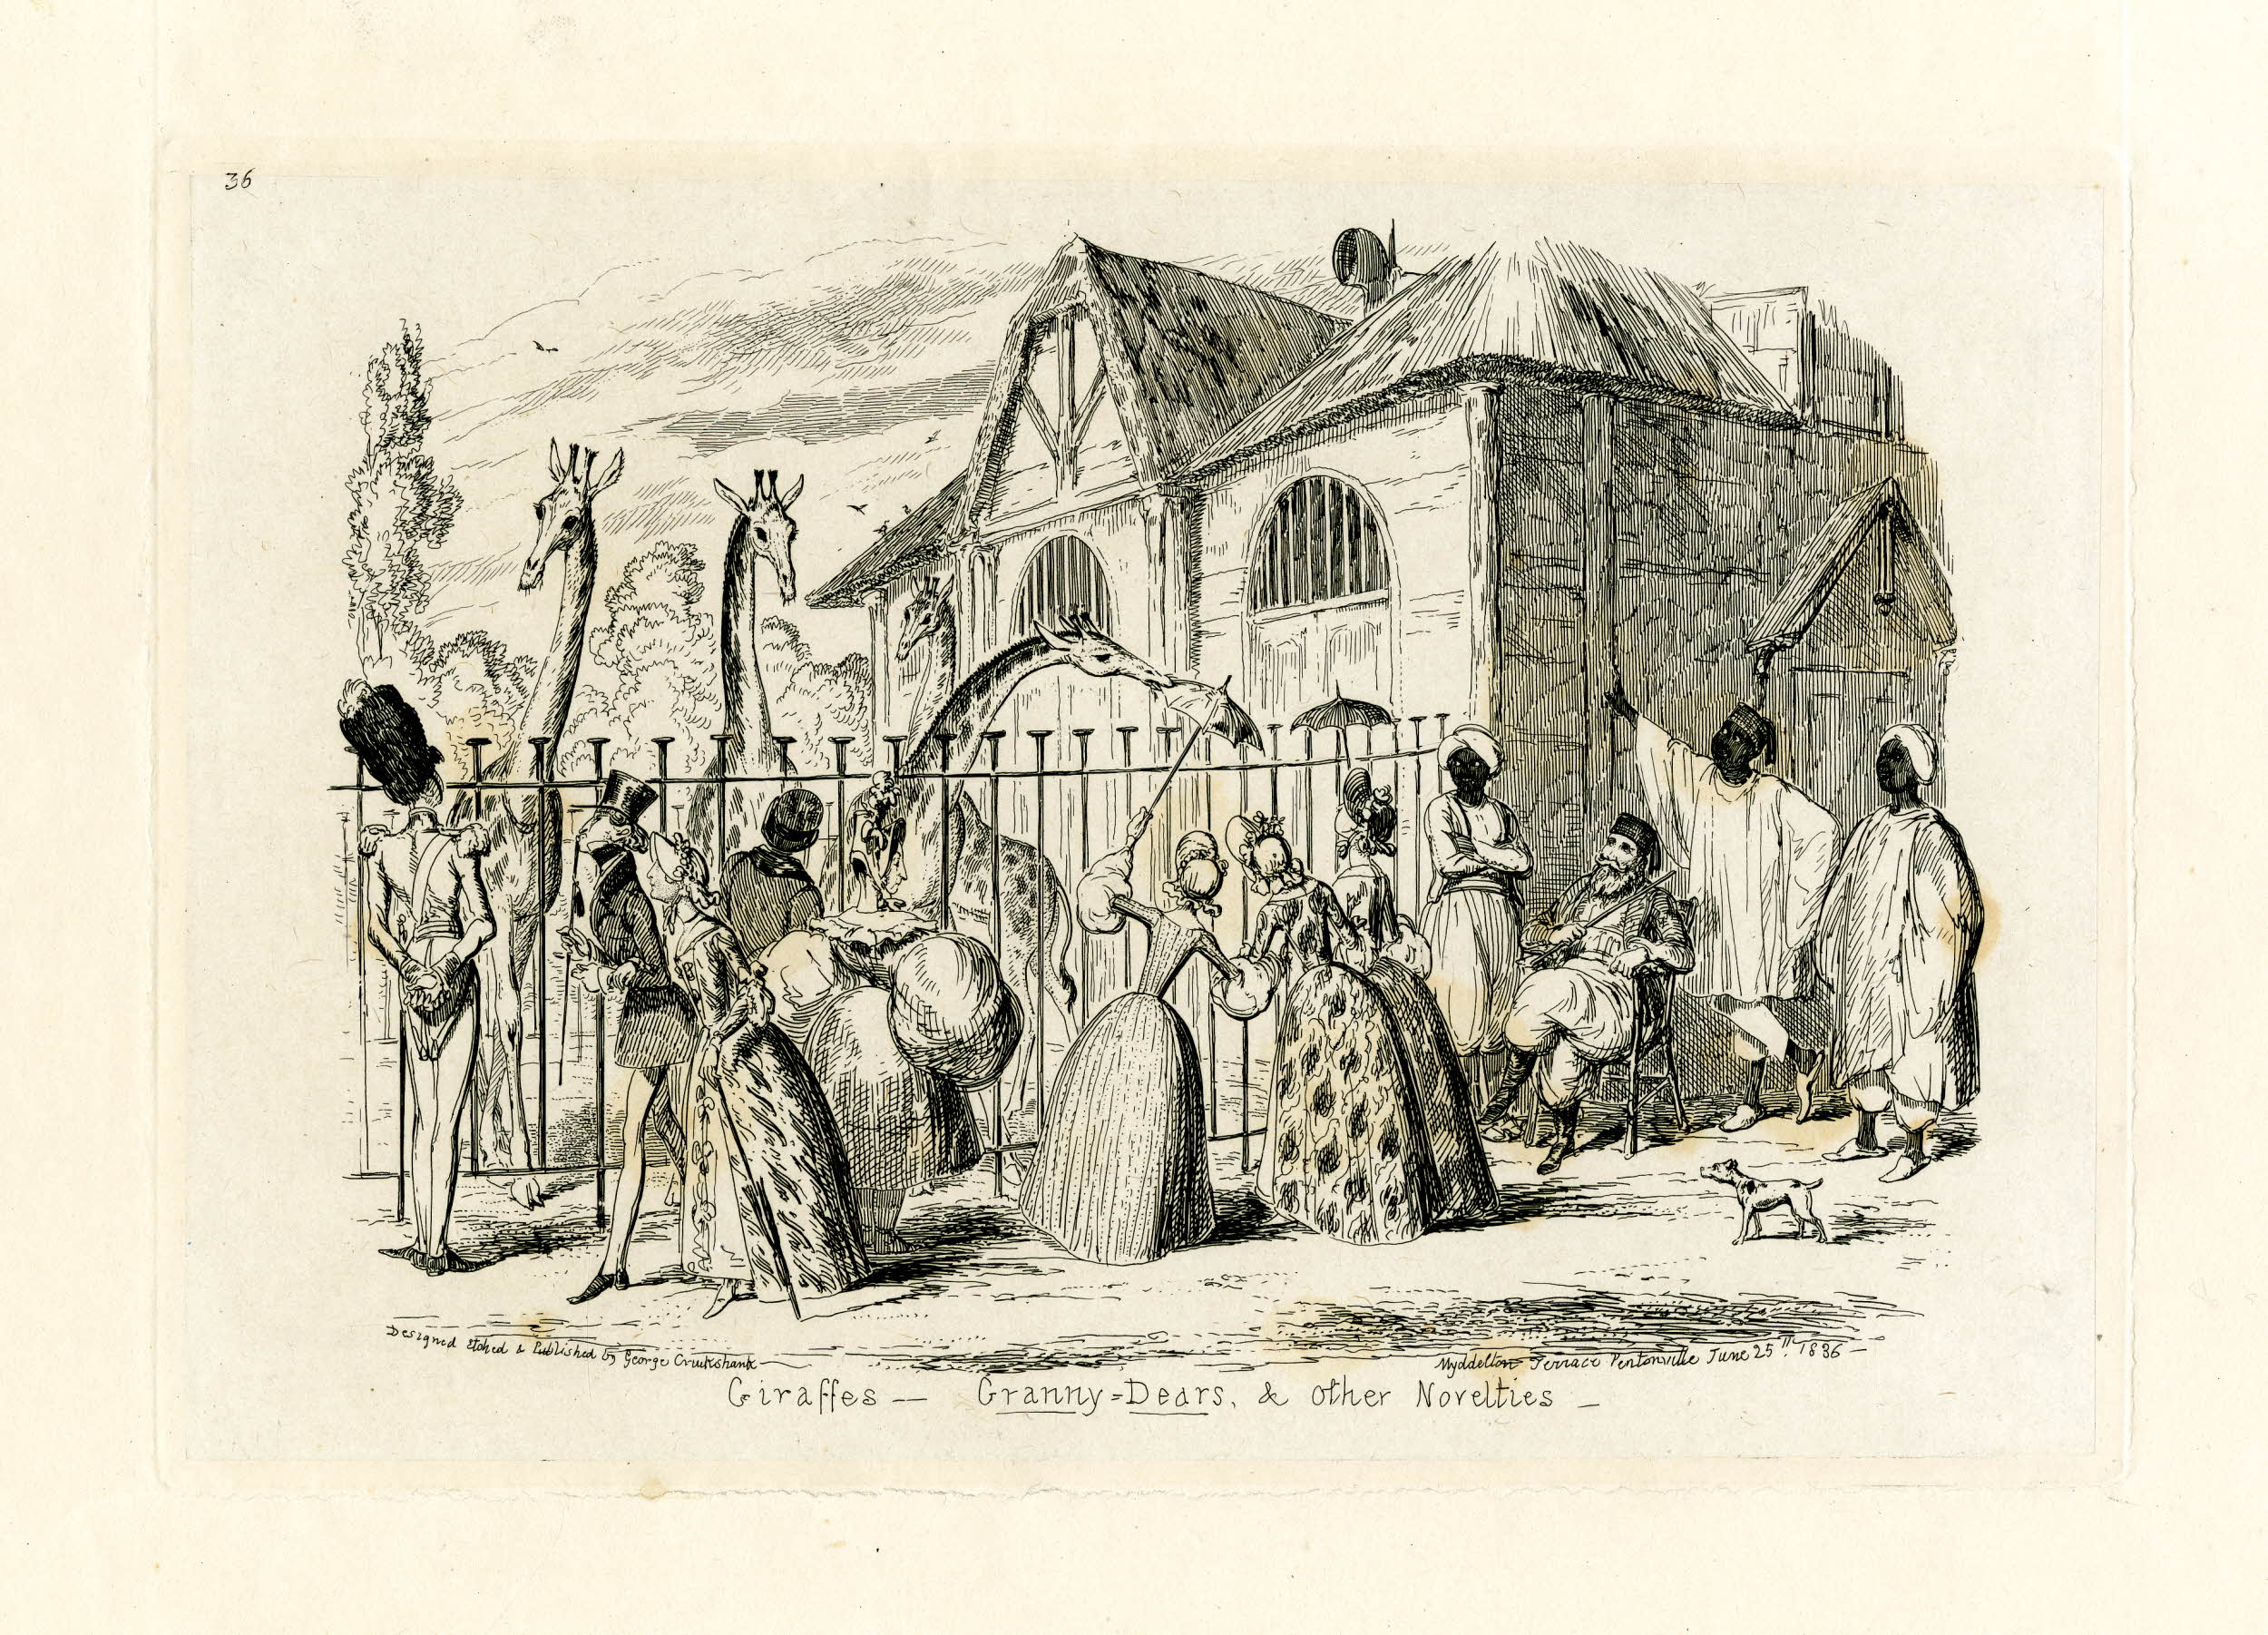 A delightful promenade: The early topography of London Zoo